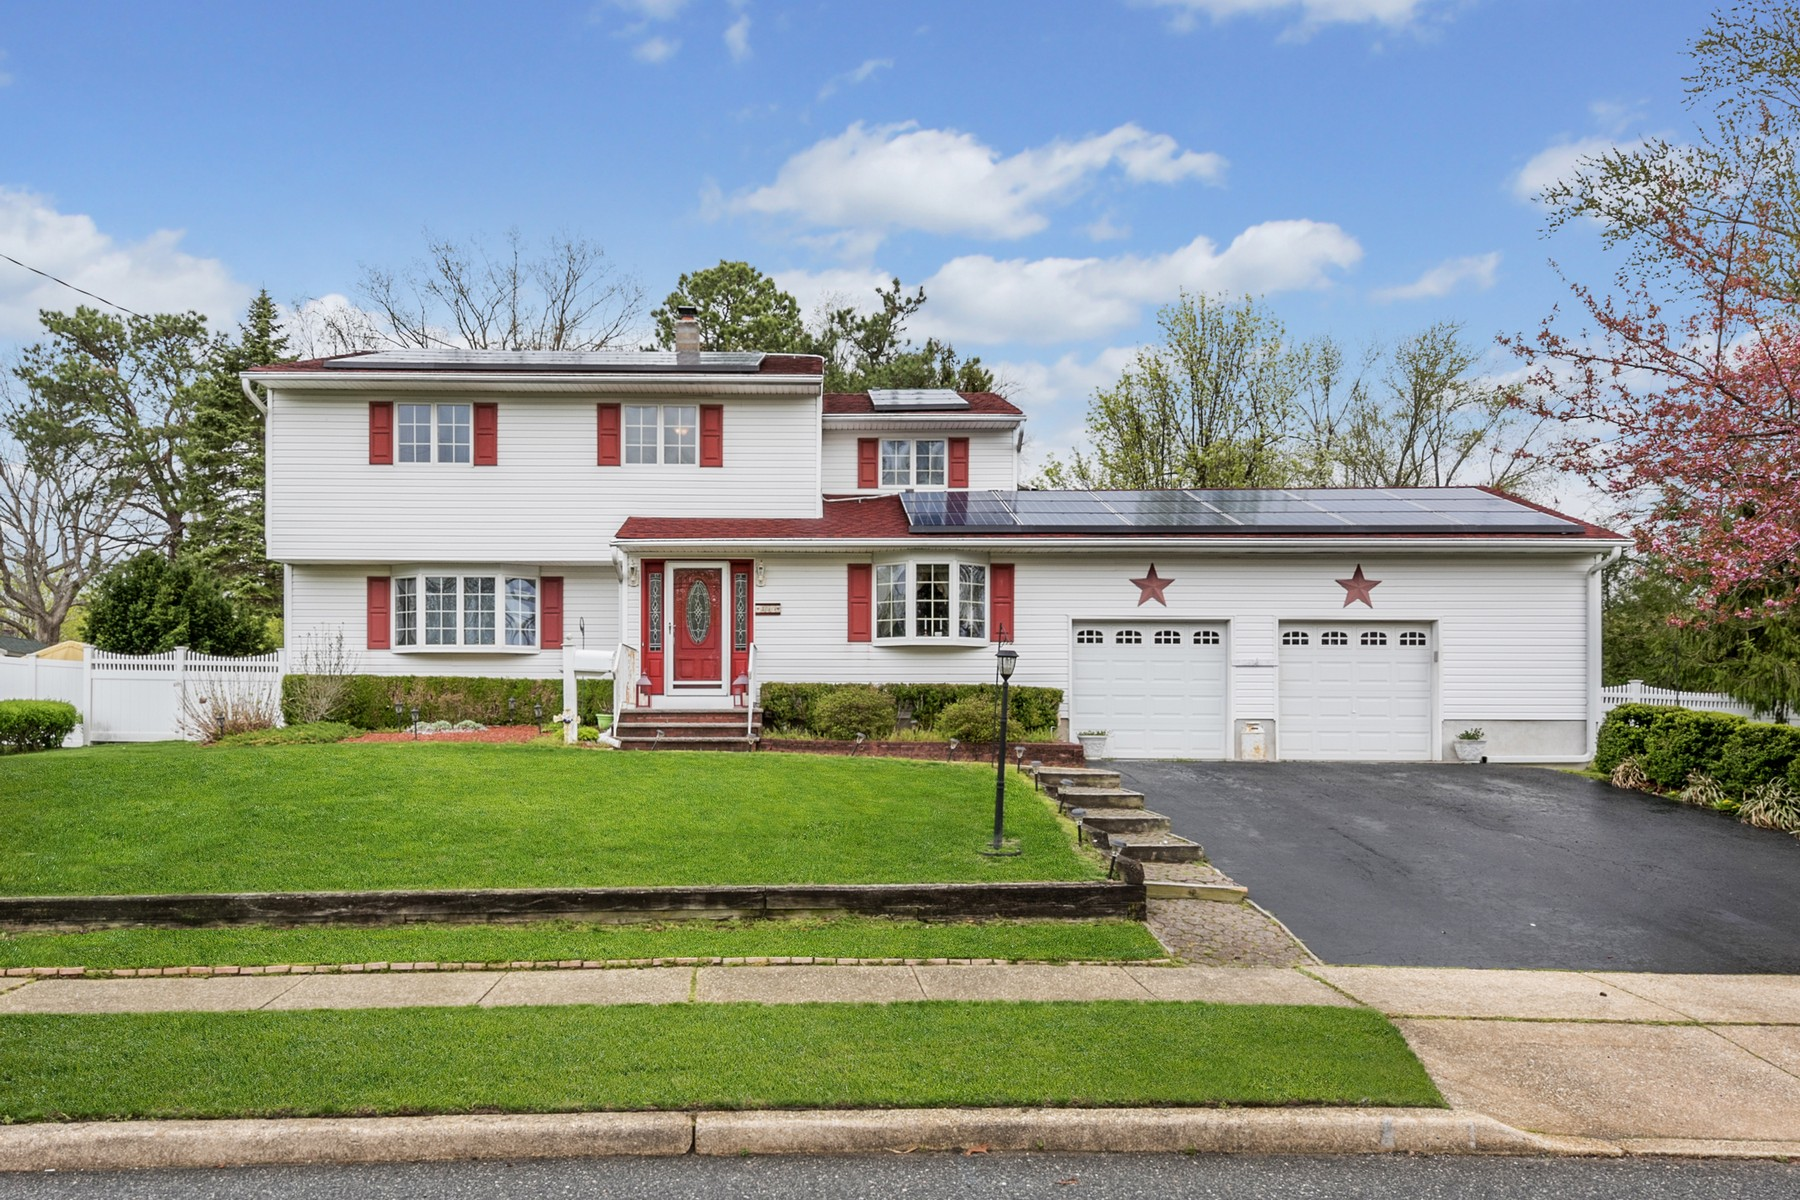 Single Family Home for Sale at A Rare Opportunity 150 Newbury Road, Howell, New Jersey 07731 United States